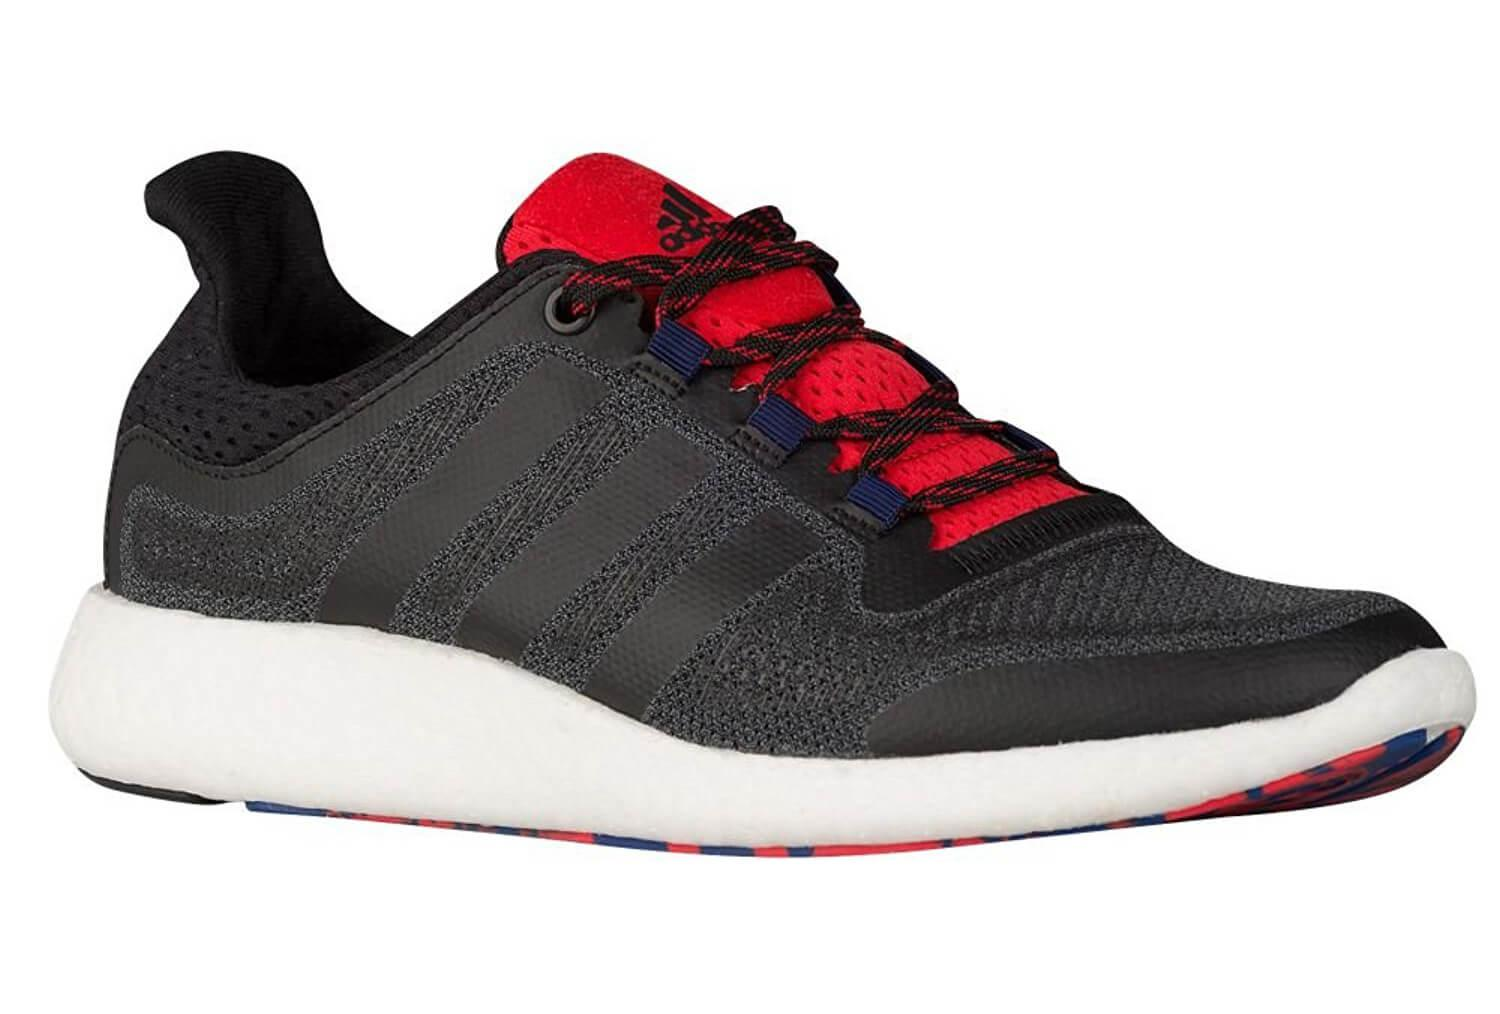 2cd6d7bfea33 Adidas Pure Boost 2.0 Review - Buy or Not in Mar 2019